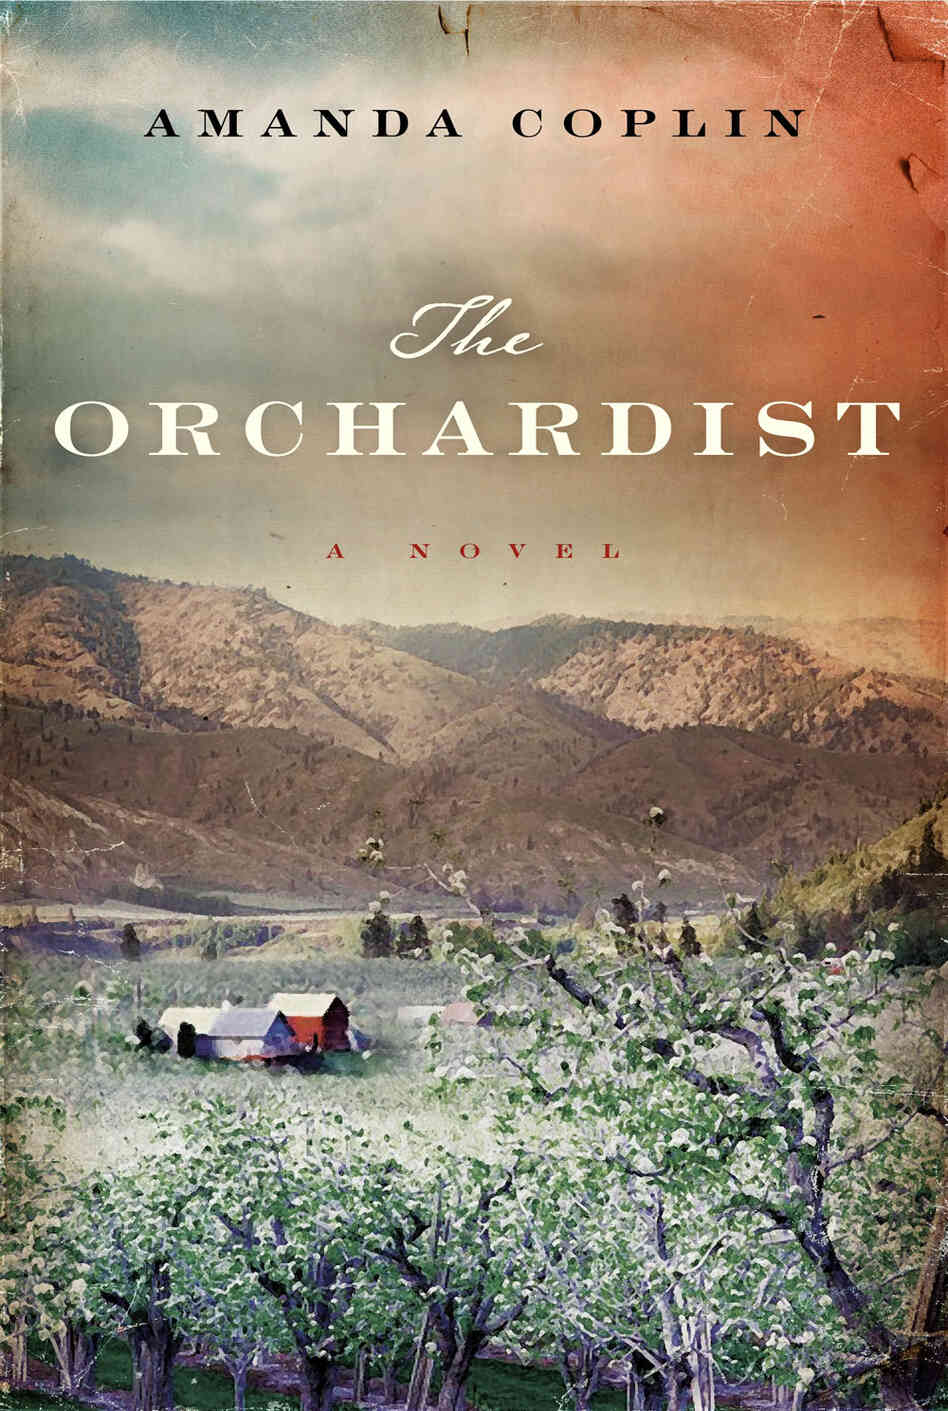 The Orchardist by Amanda Coblin.